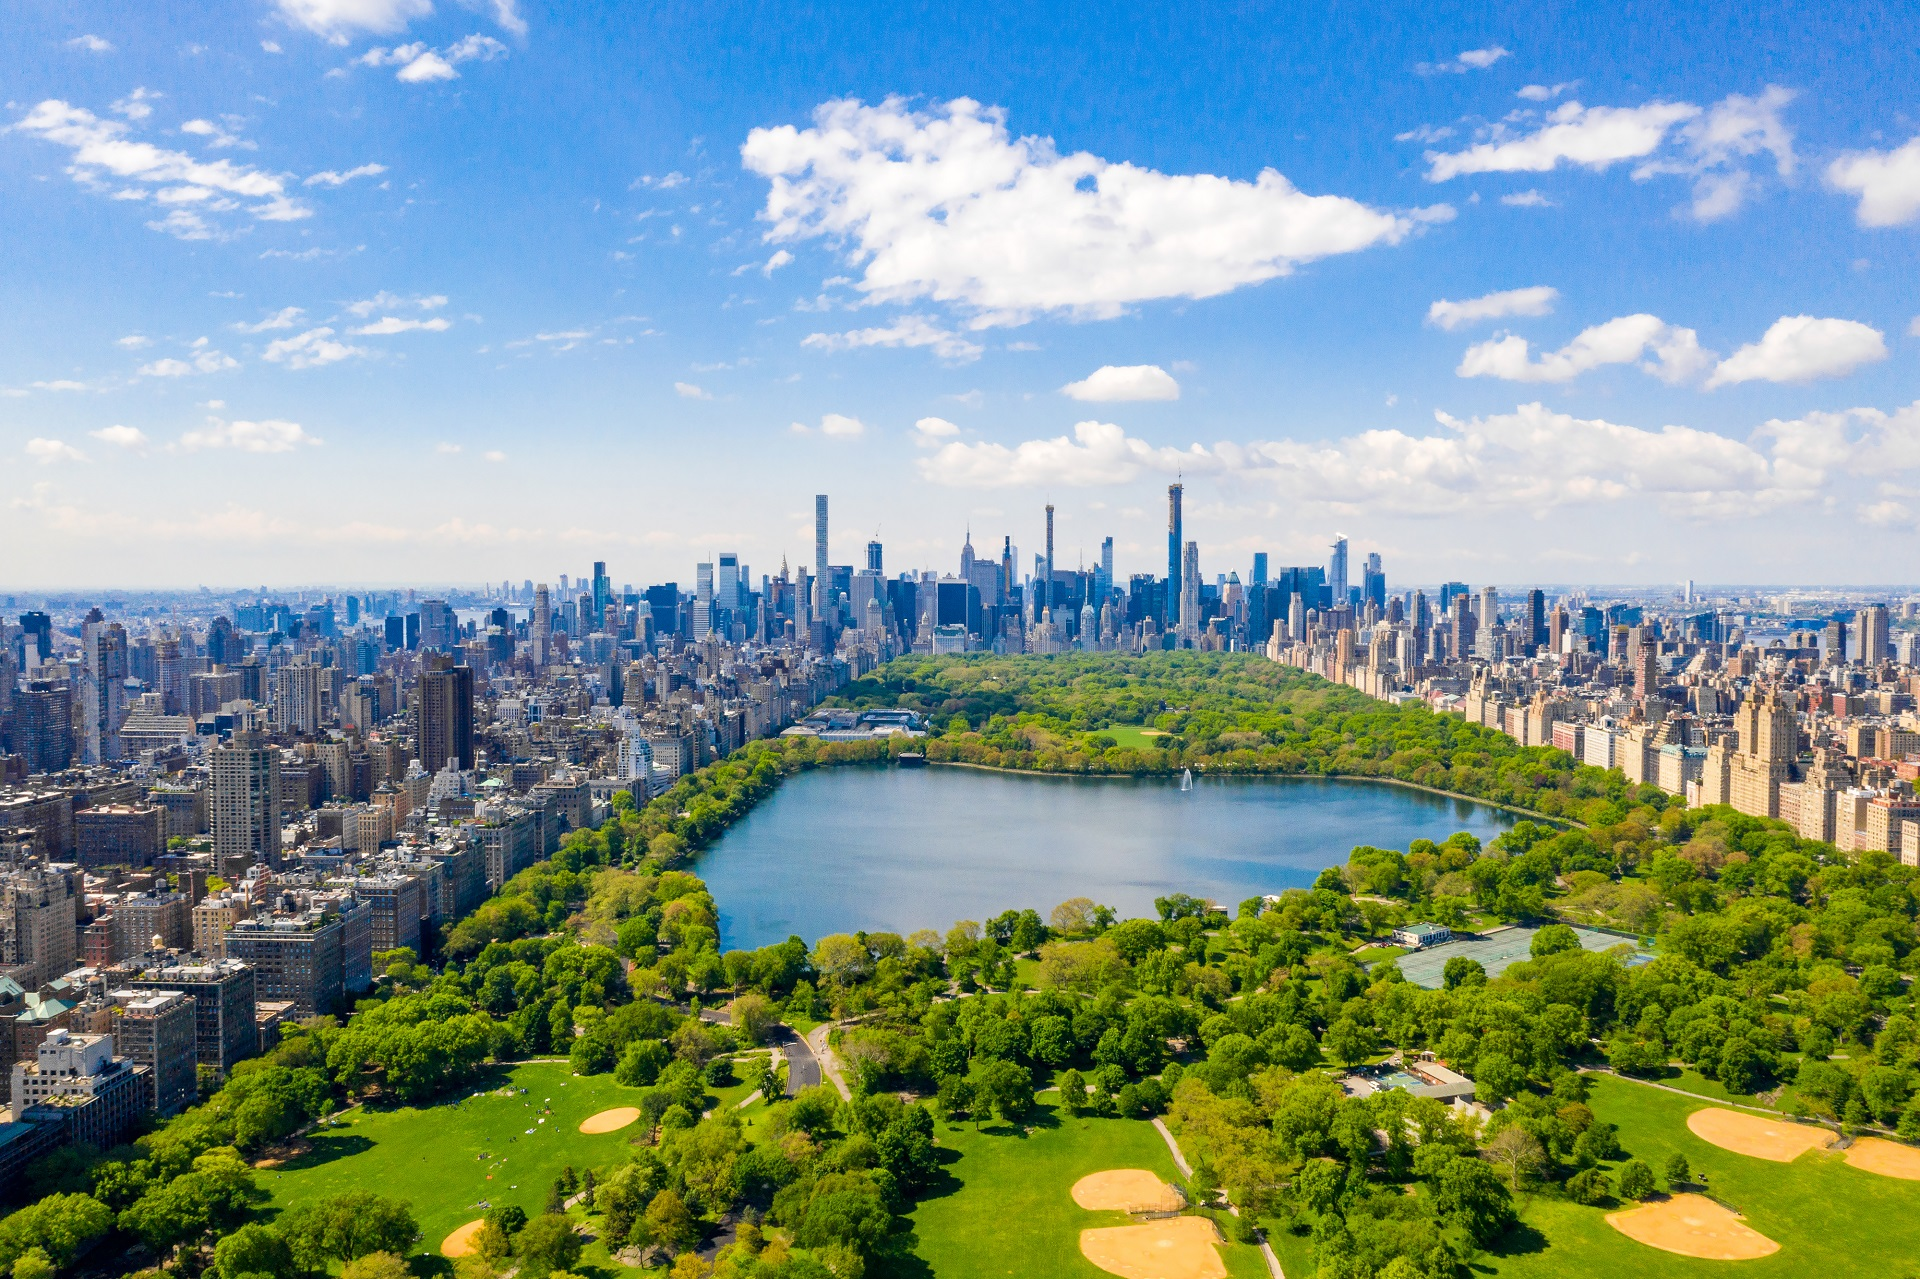 Central park in New York_1414639229